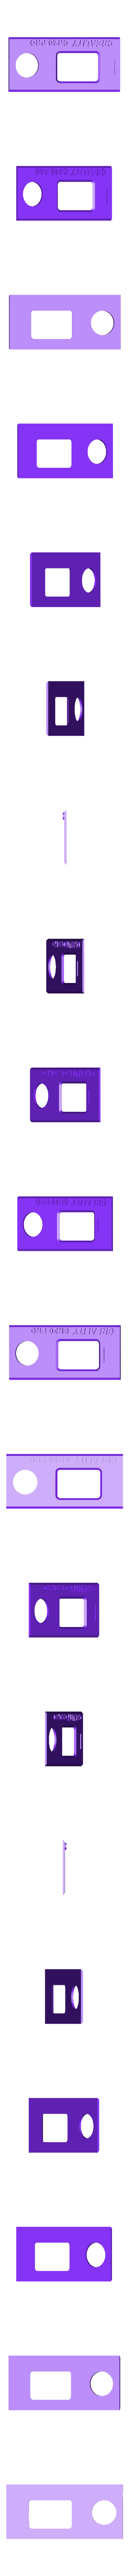 CREALITY_CR20PRO_LCD_COVER2.stl Download free STL file CR20 / CR20 PRO LCD COVER • 3D printer object, GREGCAR_3DPrinting